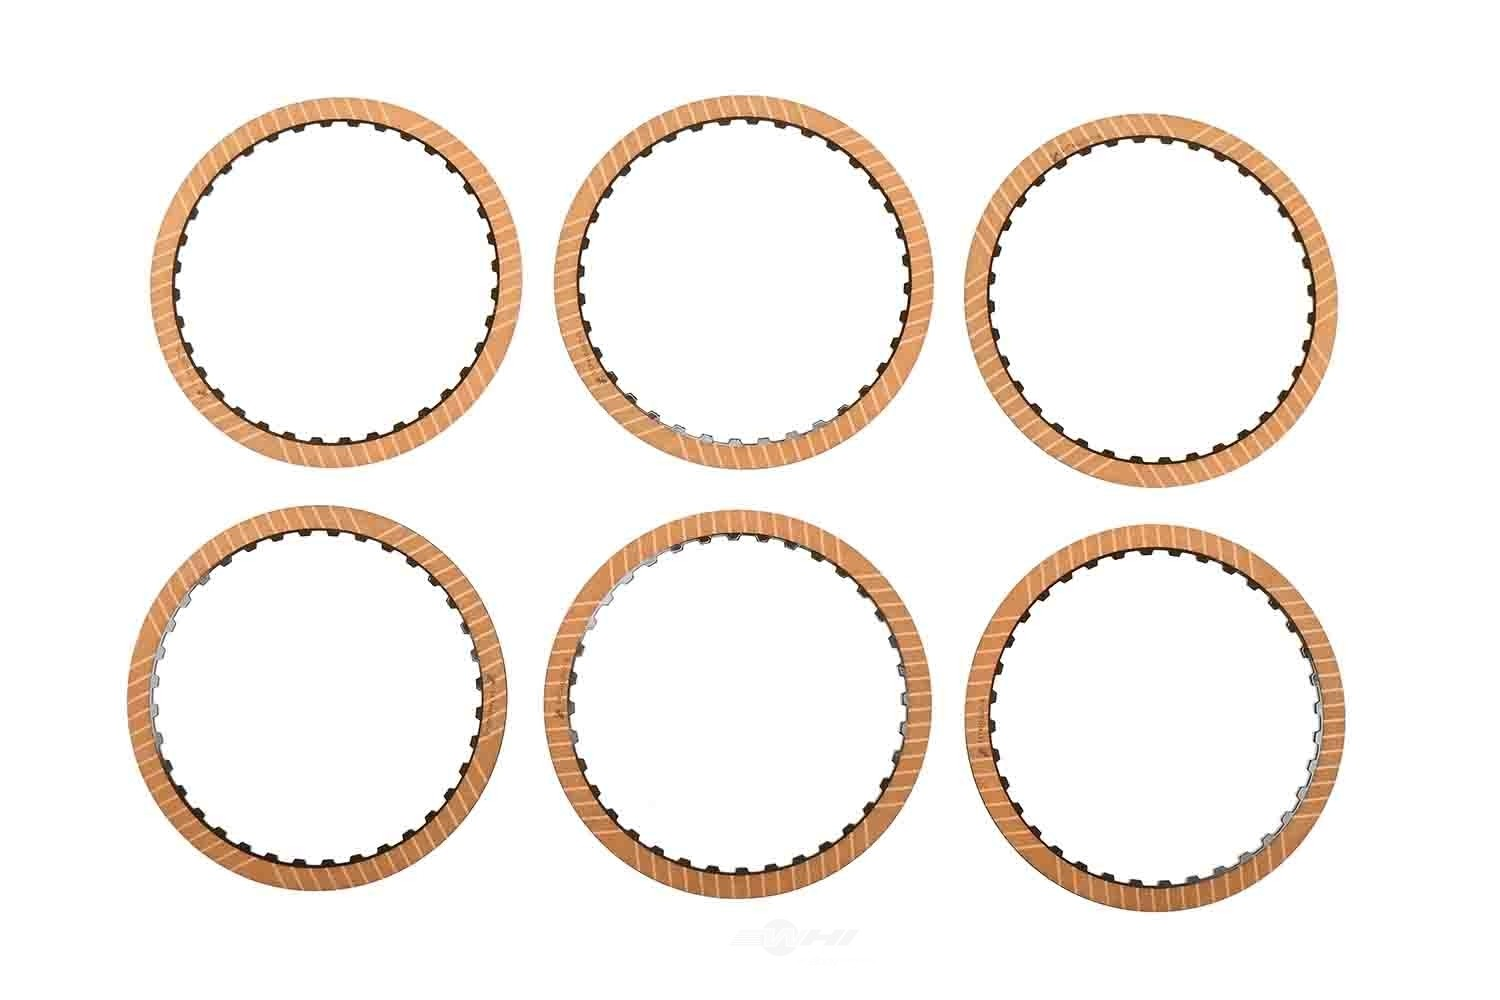 ACDELCO GM ORIGINAL EQUIPMENT - Transmission Clutch Friction Plate - DCB 24224147